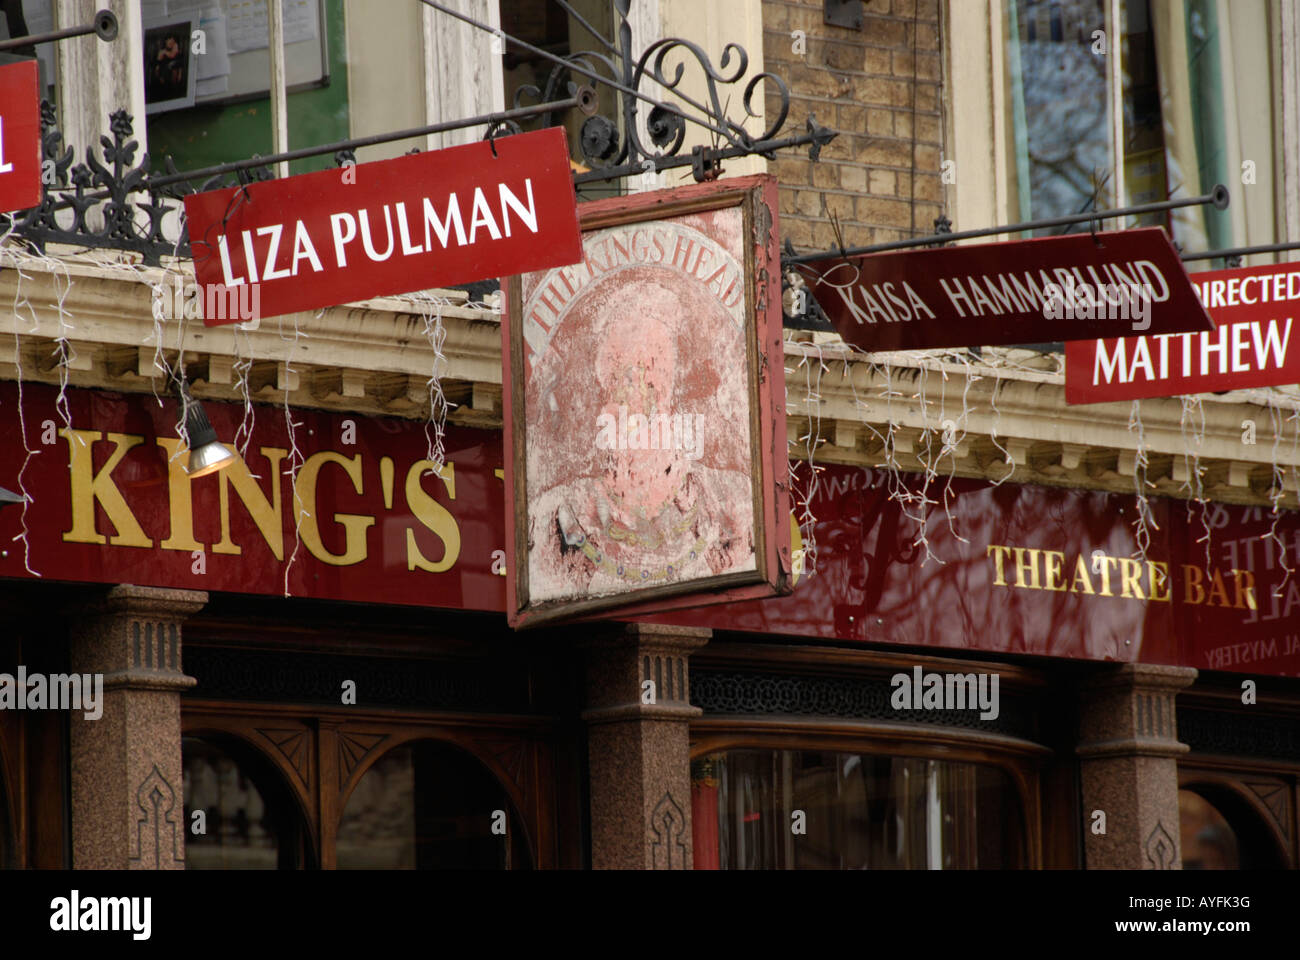 King's Head Theatre Islington London - Stock Image